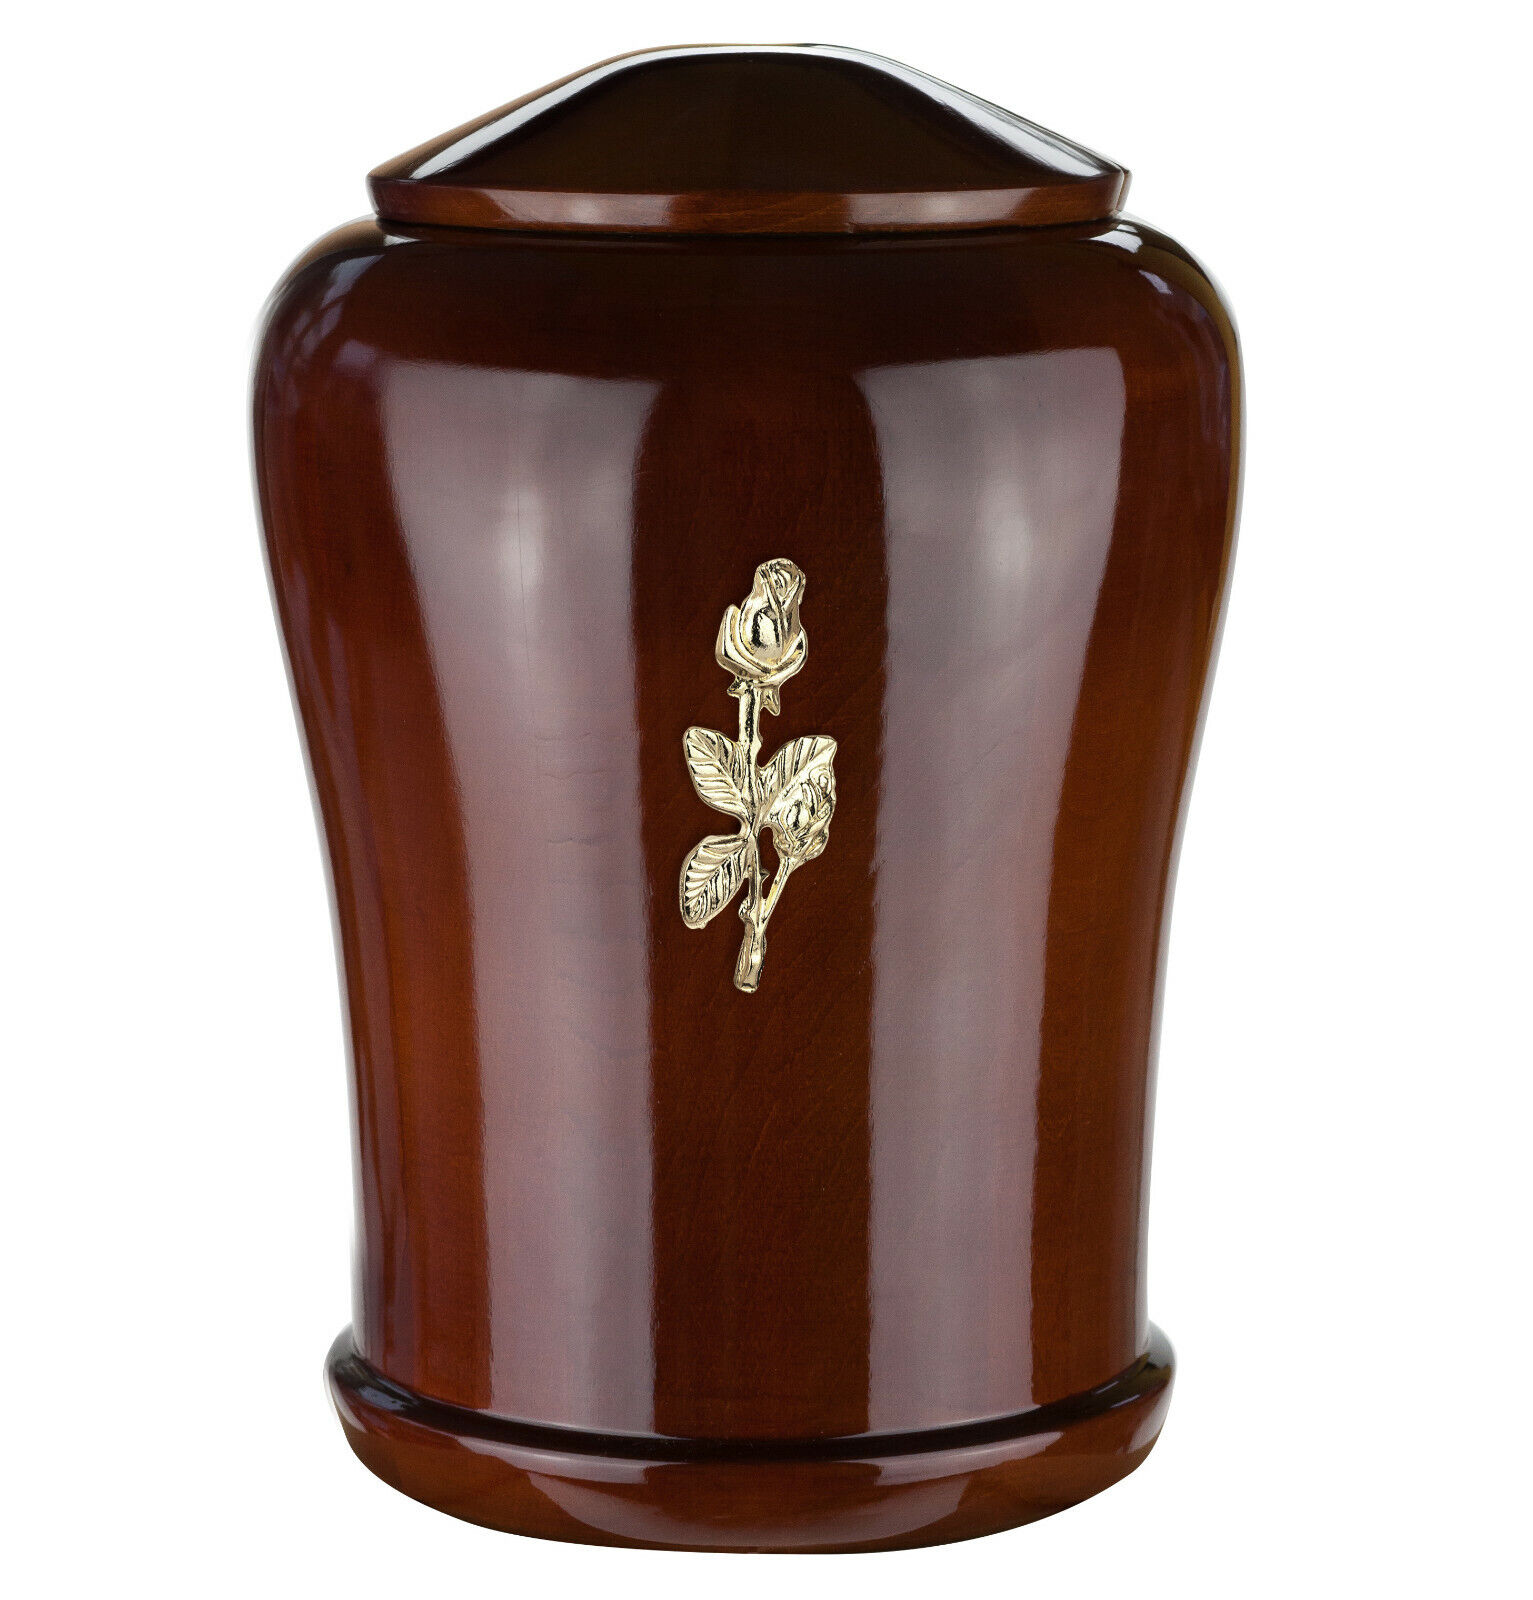 High Gloss wooden Cremation Adult Size Urn for ashes artisans craft memorial URN